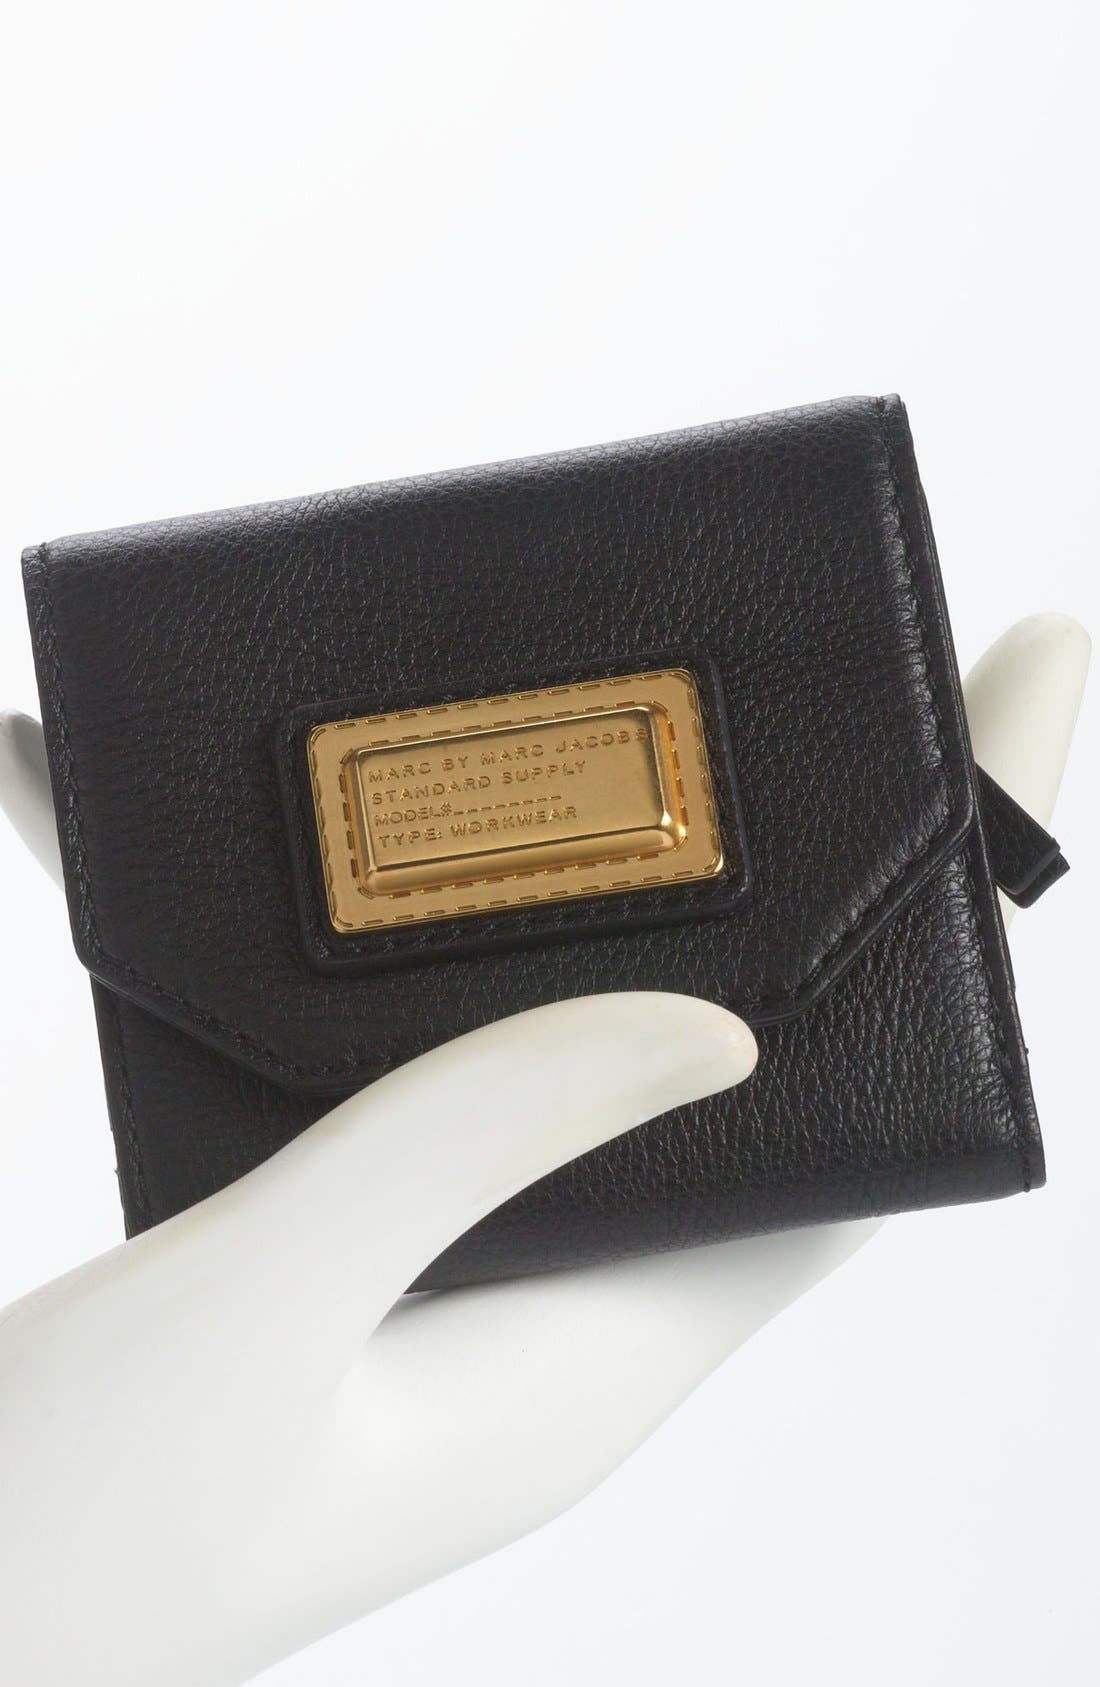 MARC BY MARC JACOBS Bifold French Wallet,                             Alternate thumbnail 4, color,                             001